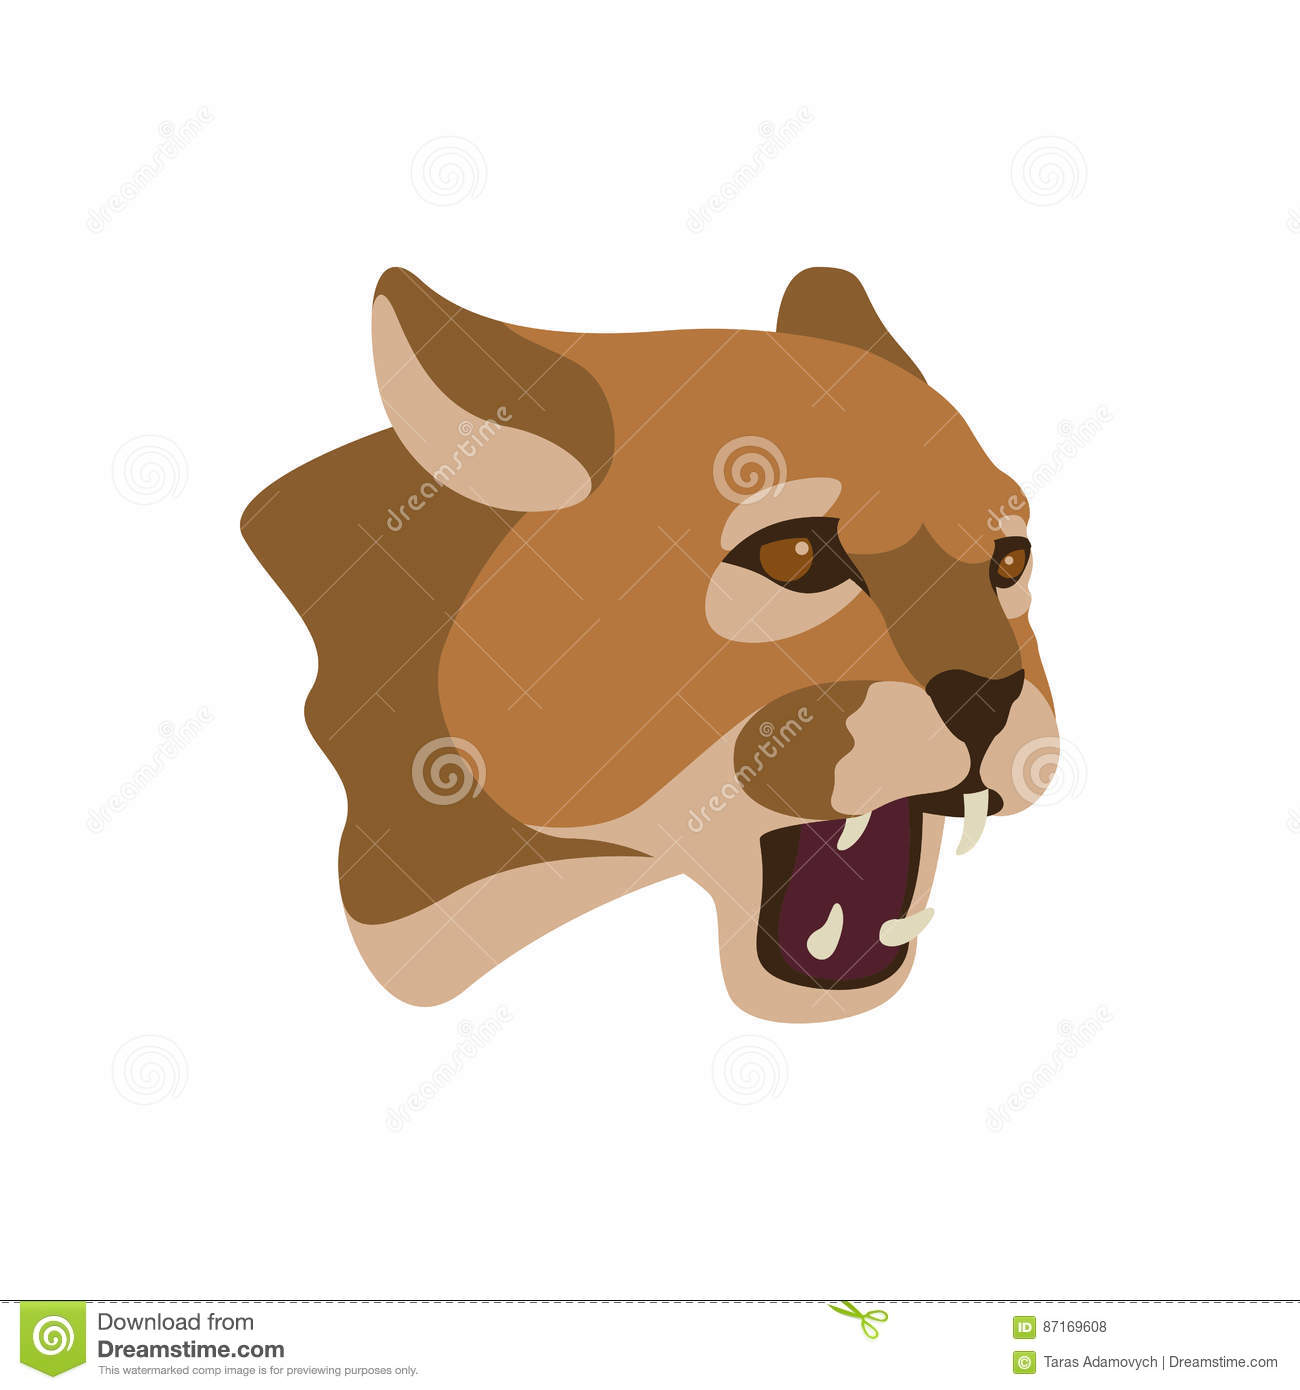 Cougar Head Face Vector Illustration Style Flat additionally Stock Vector Black Panther Attack Isolated Vector Tattoo Flash With Background also Stock Vector Vector Image Of An Panther Design On White Background And Dark Blue Background Logo Symbol besides Stock Photo Russian Blue Cat moreover Stock Vector Set Of Silhouettes Of Crocodiles On A White Background. on zentangle stylized wild lion animal cartoon angry white background